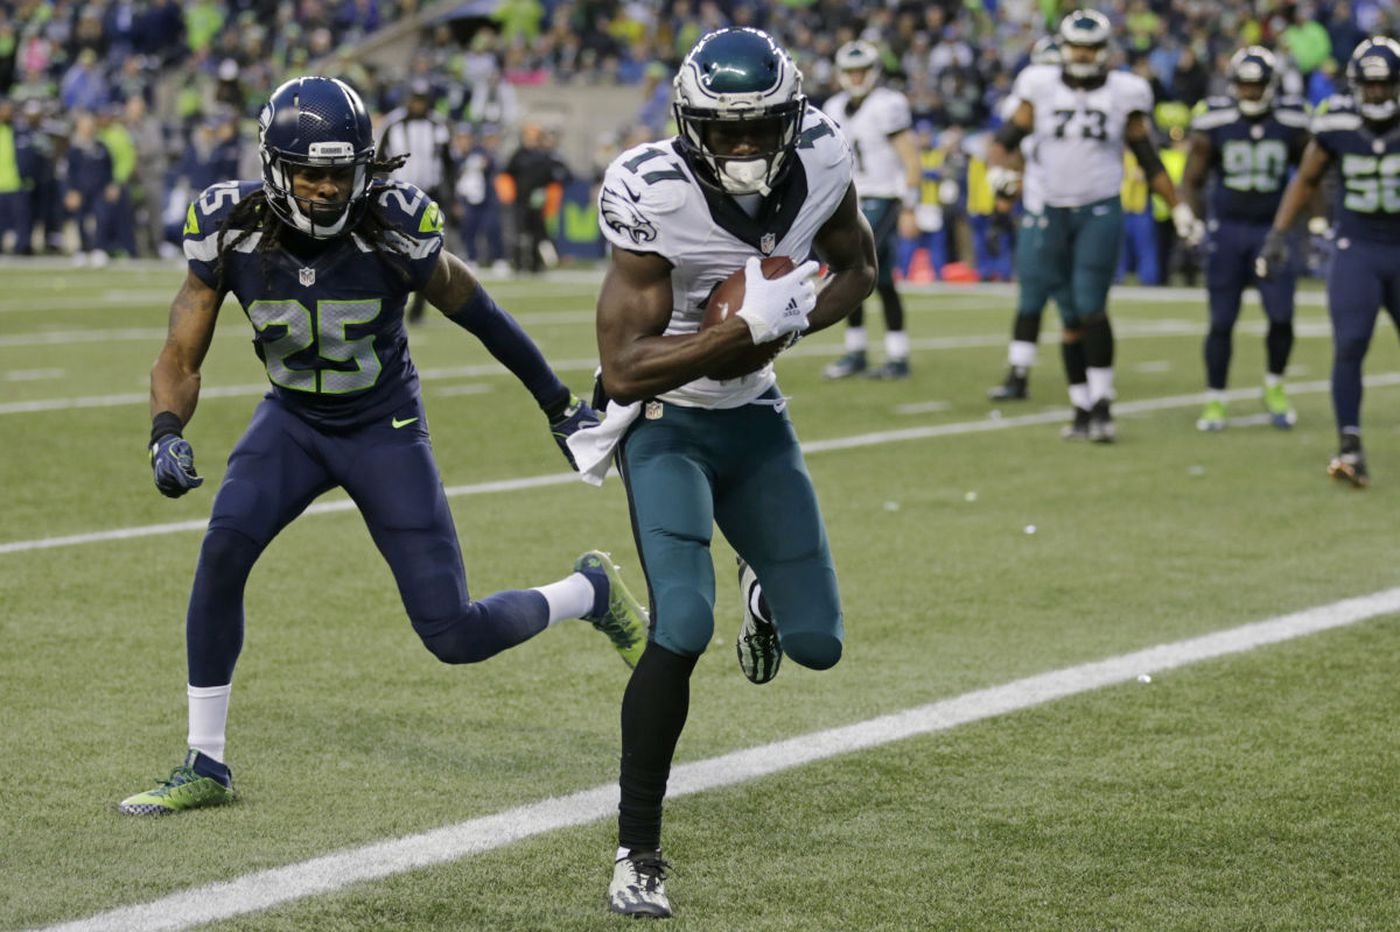 Brookover: Eagles should show patience with Agholor